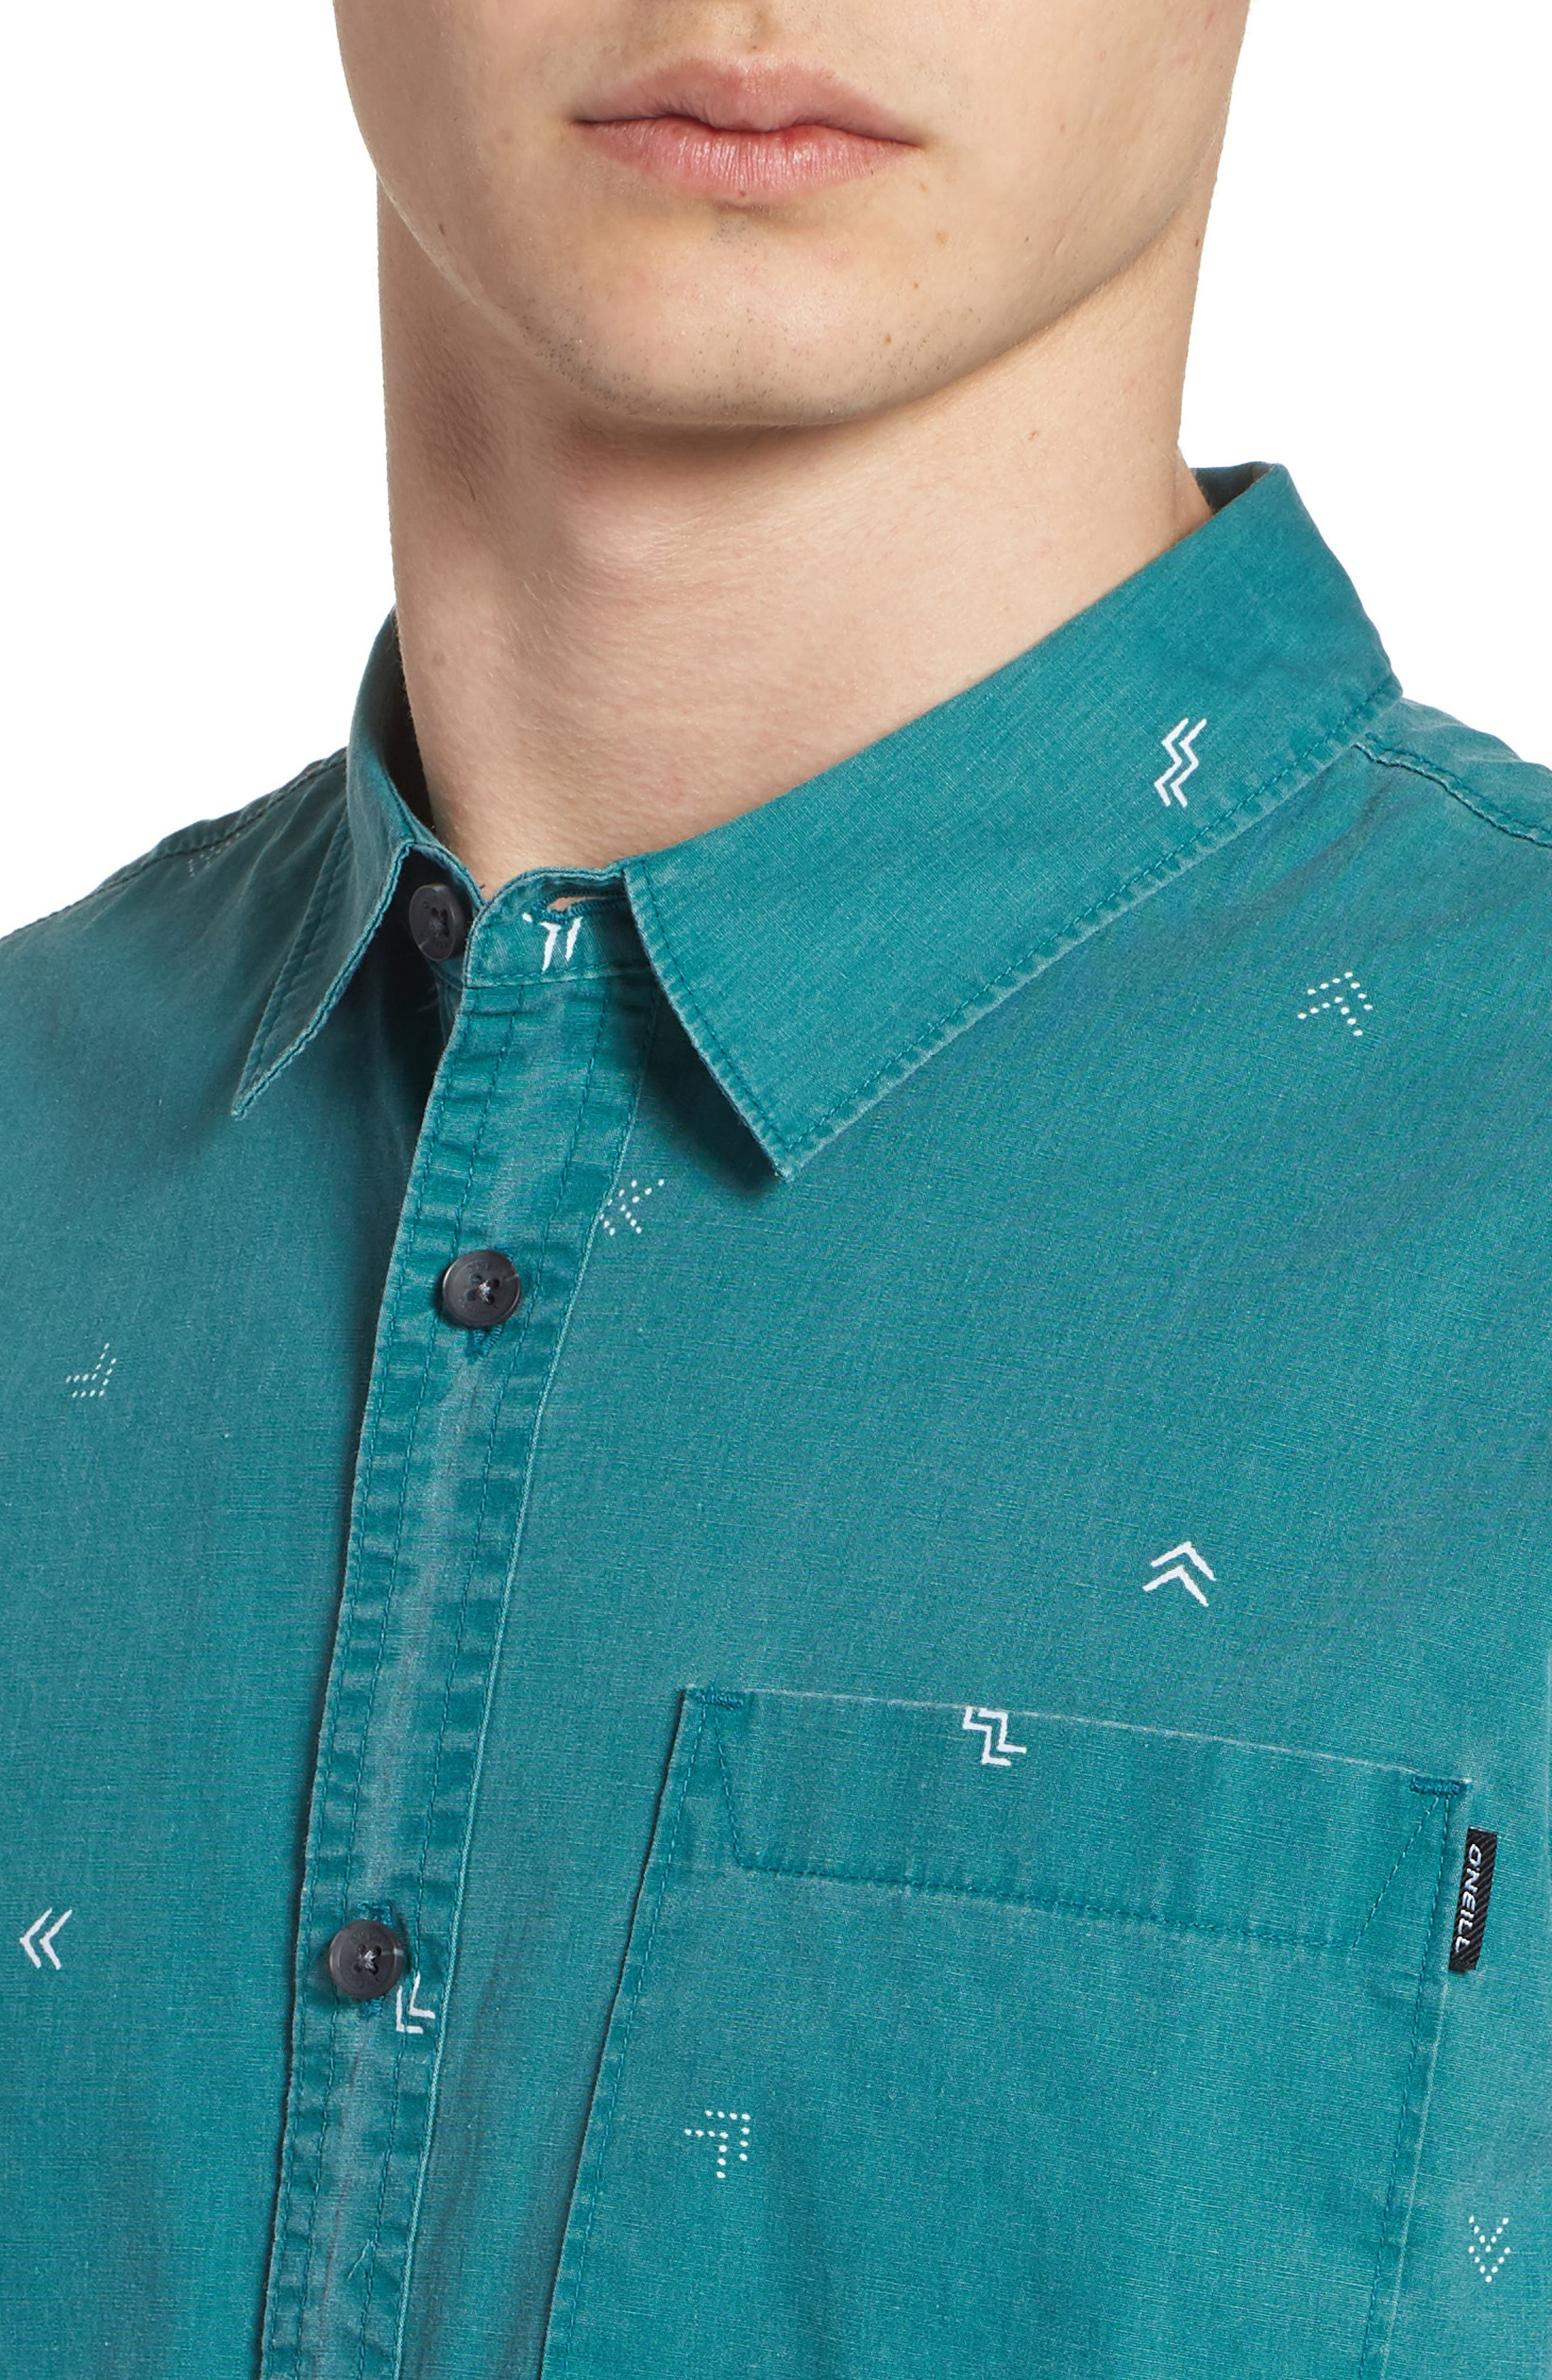 Kruger Woven Shirt,                             Alternate thumbnail 2, color,                             Jade